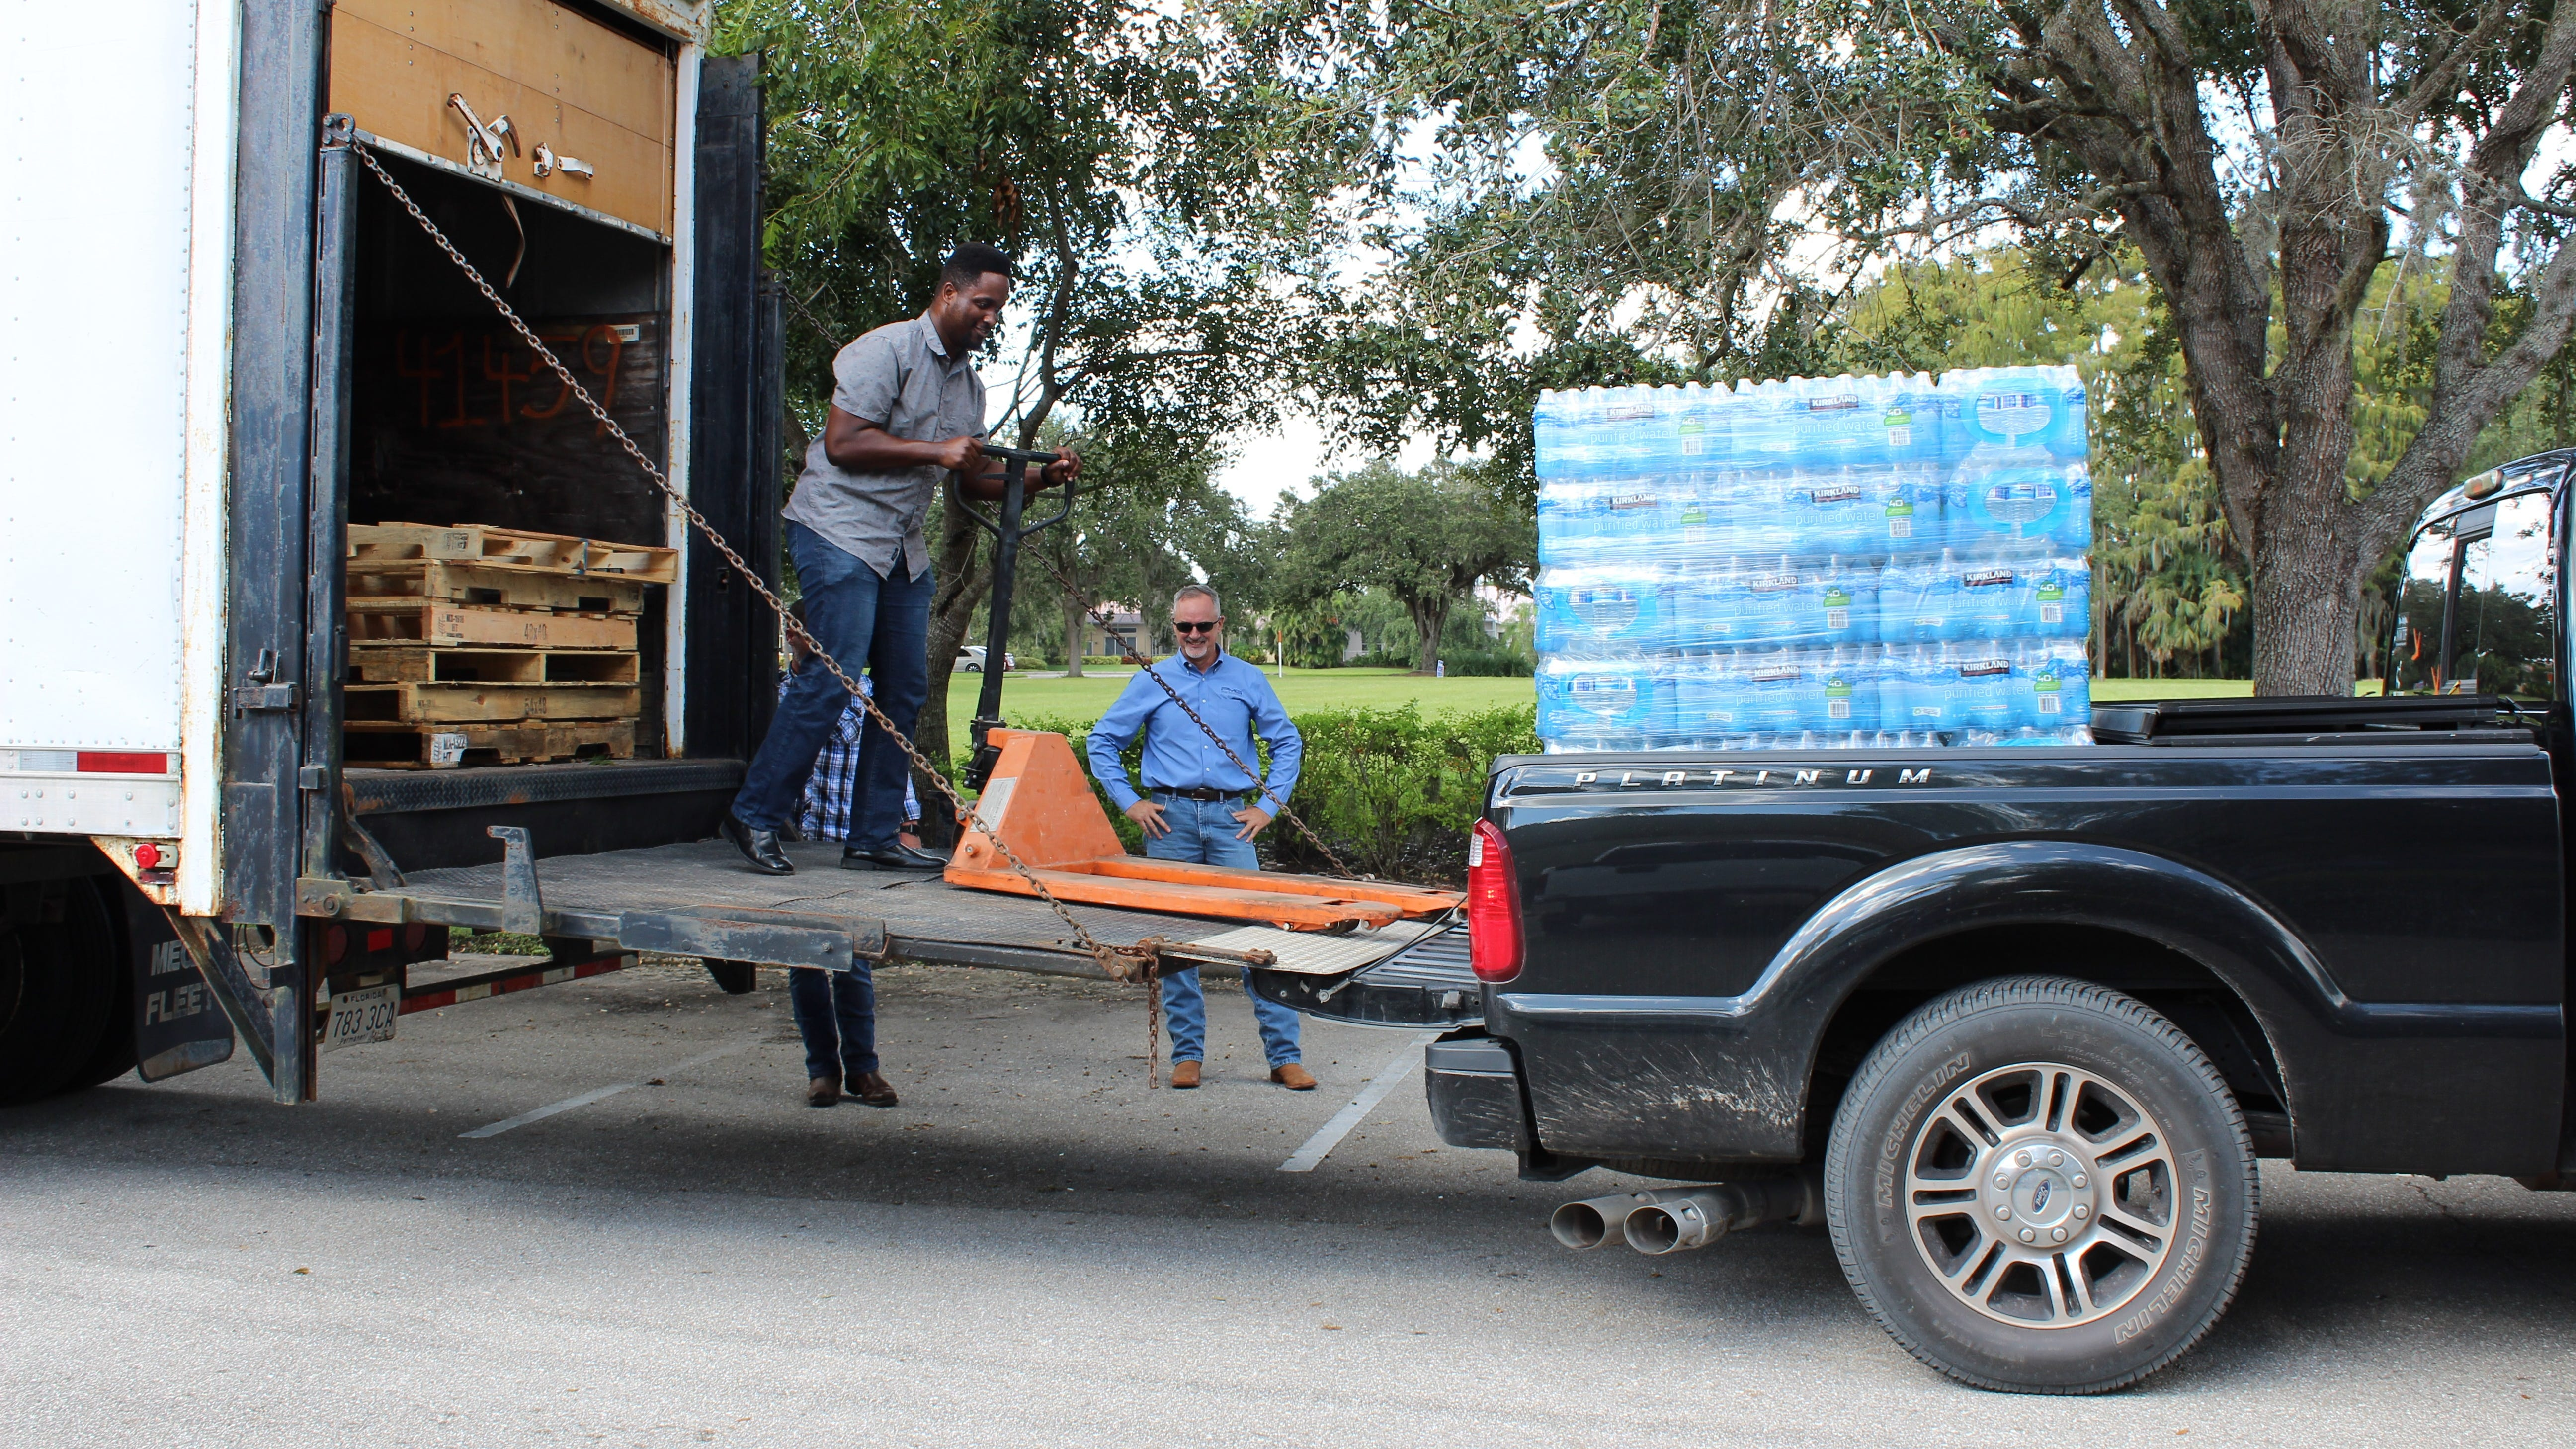 The contractor with offices in Naples and Fort Myers is gathering food and hurricane relief supplies to send to the Florida Panhandle.